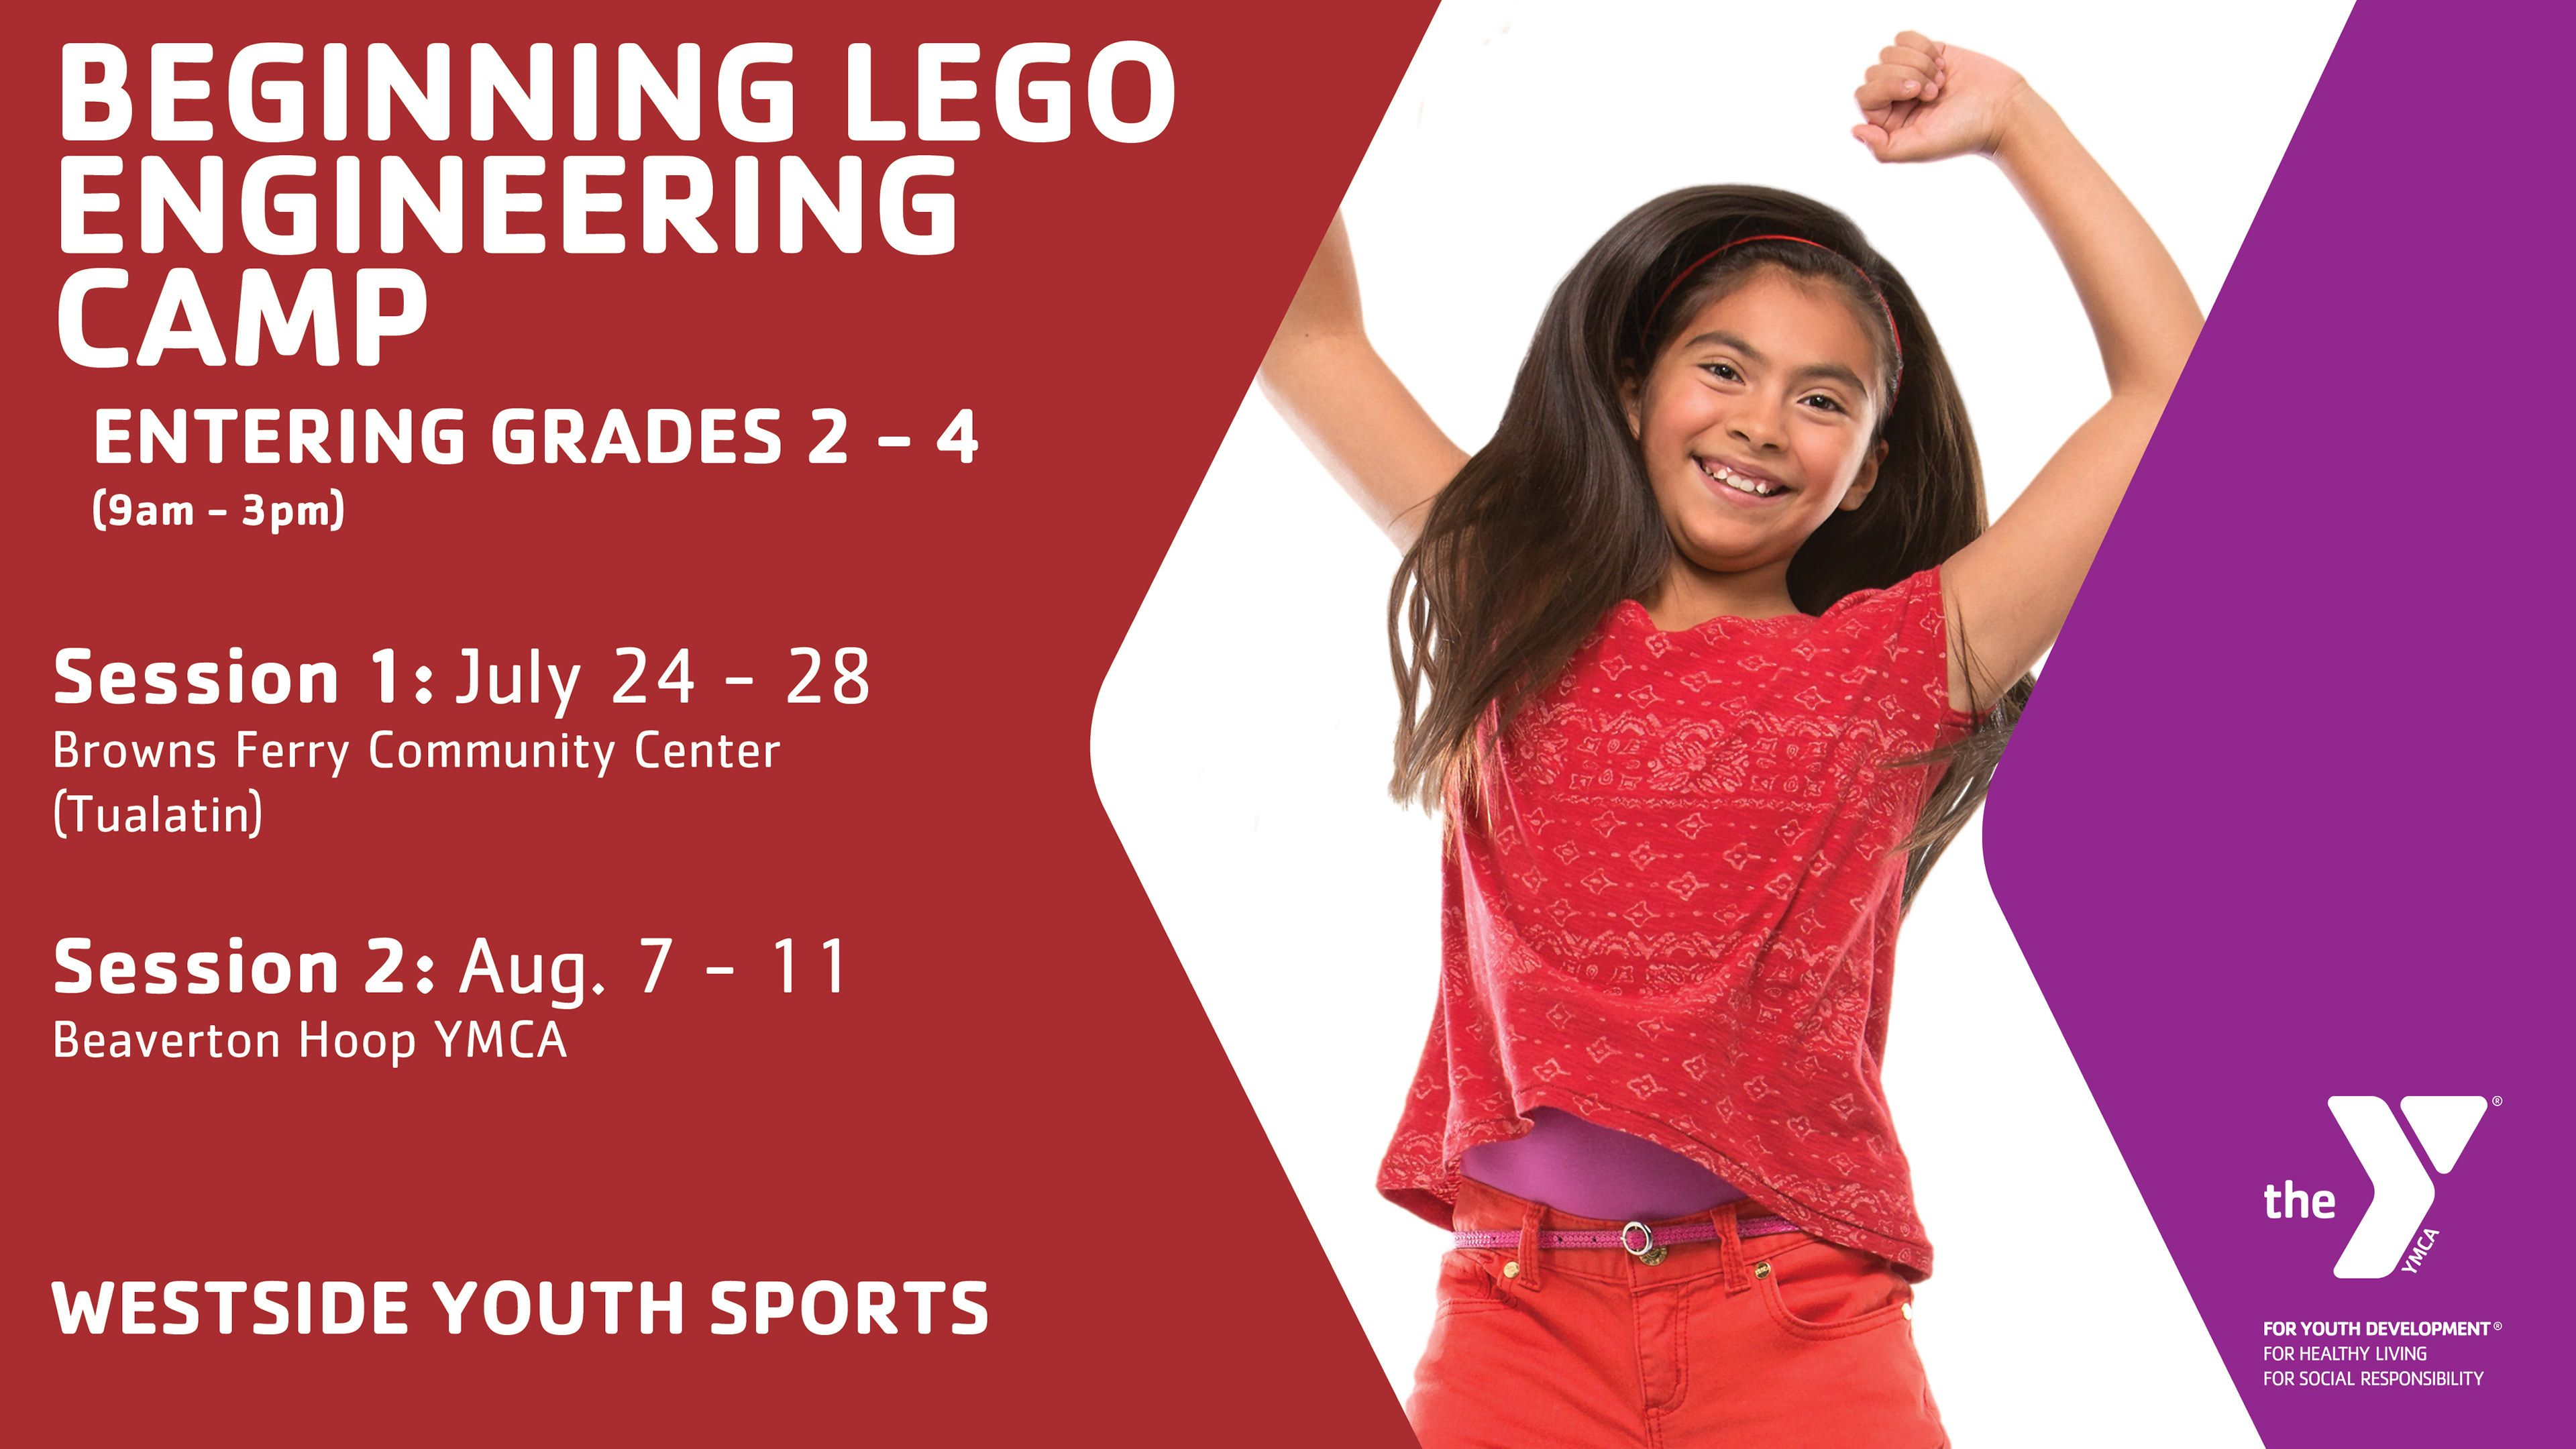 2017 Ymca Of Columbia Willamette Beaverton Hoop Ymca Offers A Variety Of Sports And Enrichments Camps Through The Westside Marketing Program Youth Programs Marketing